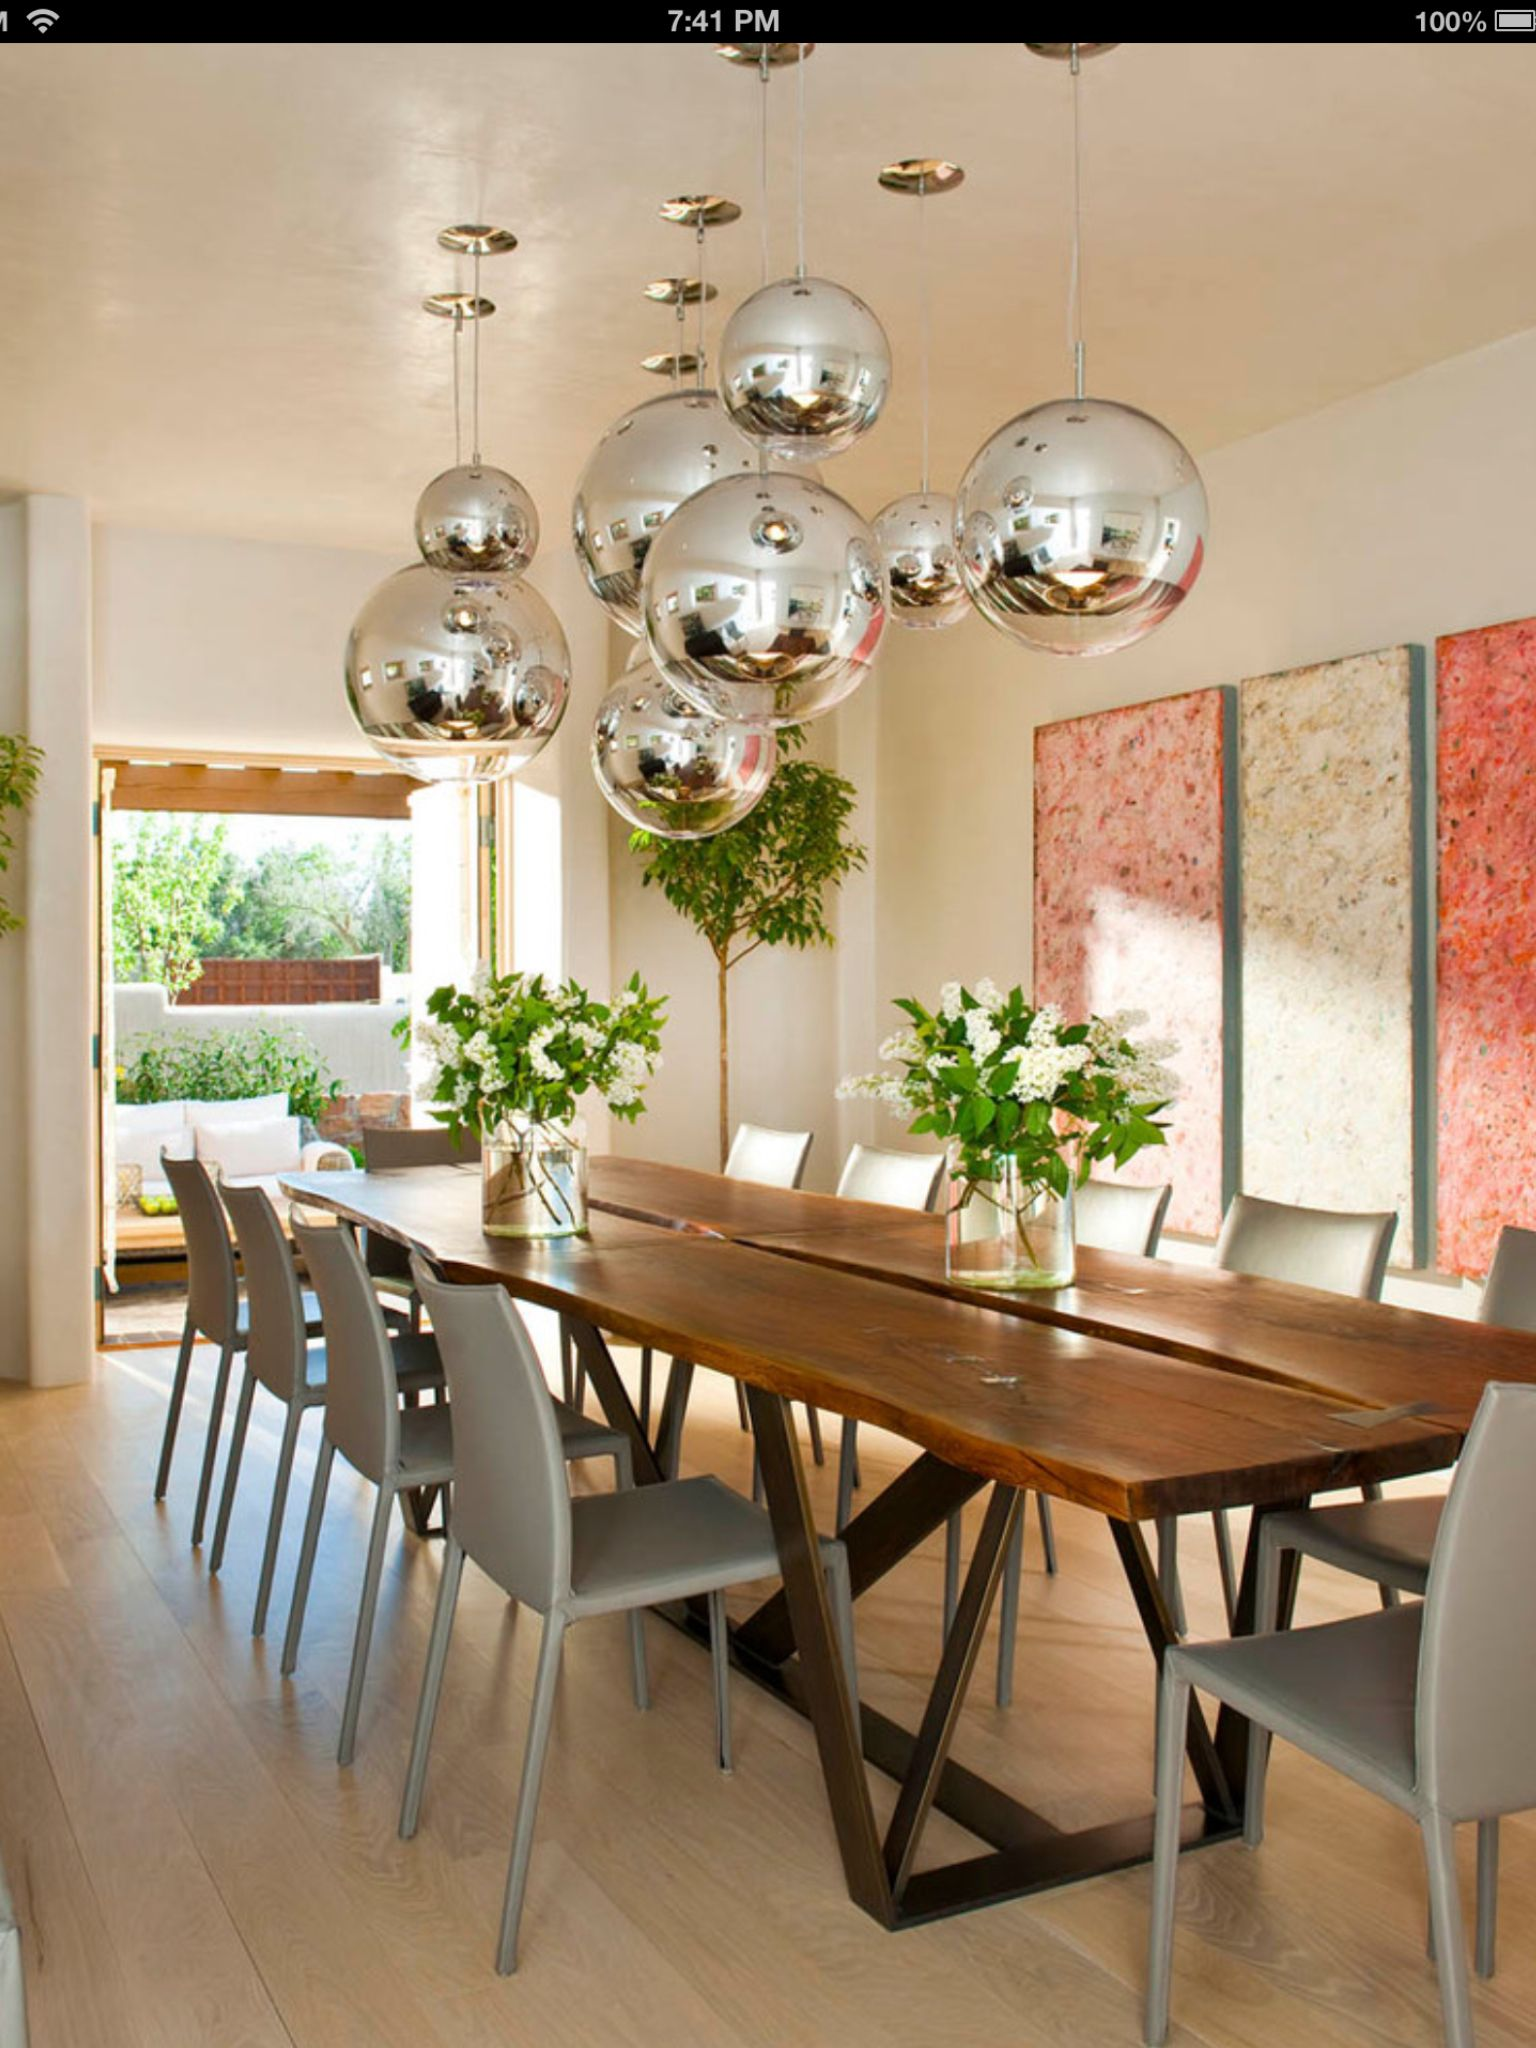 Ball Lights Diningroom Tables Chairs Chandeliers Pendant